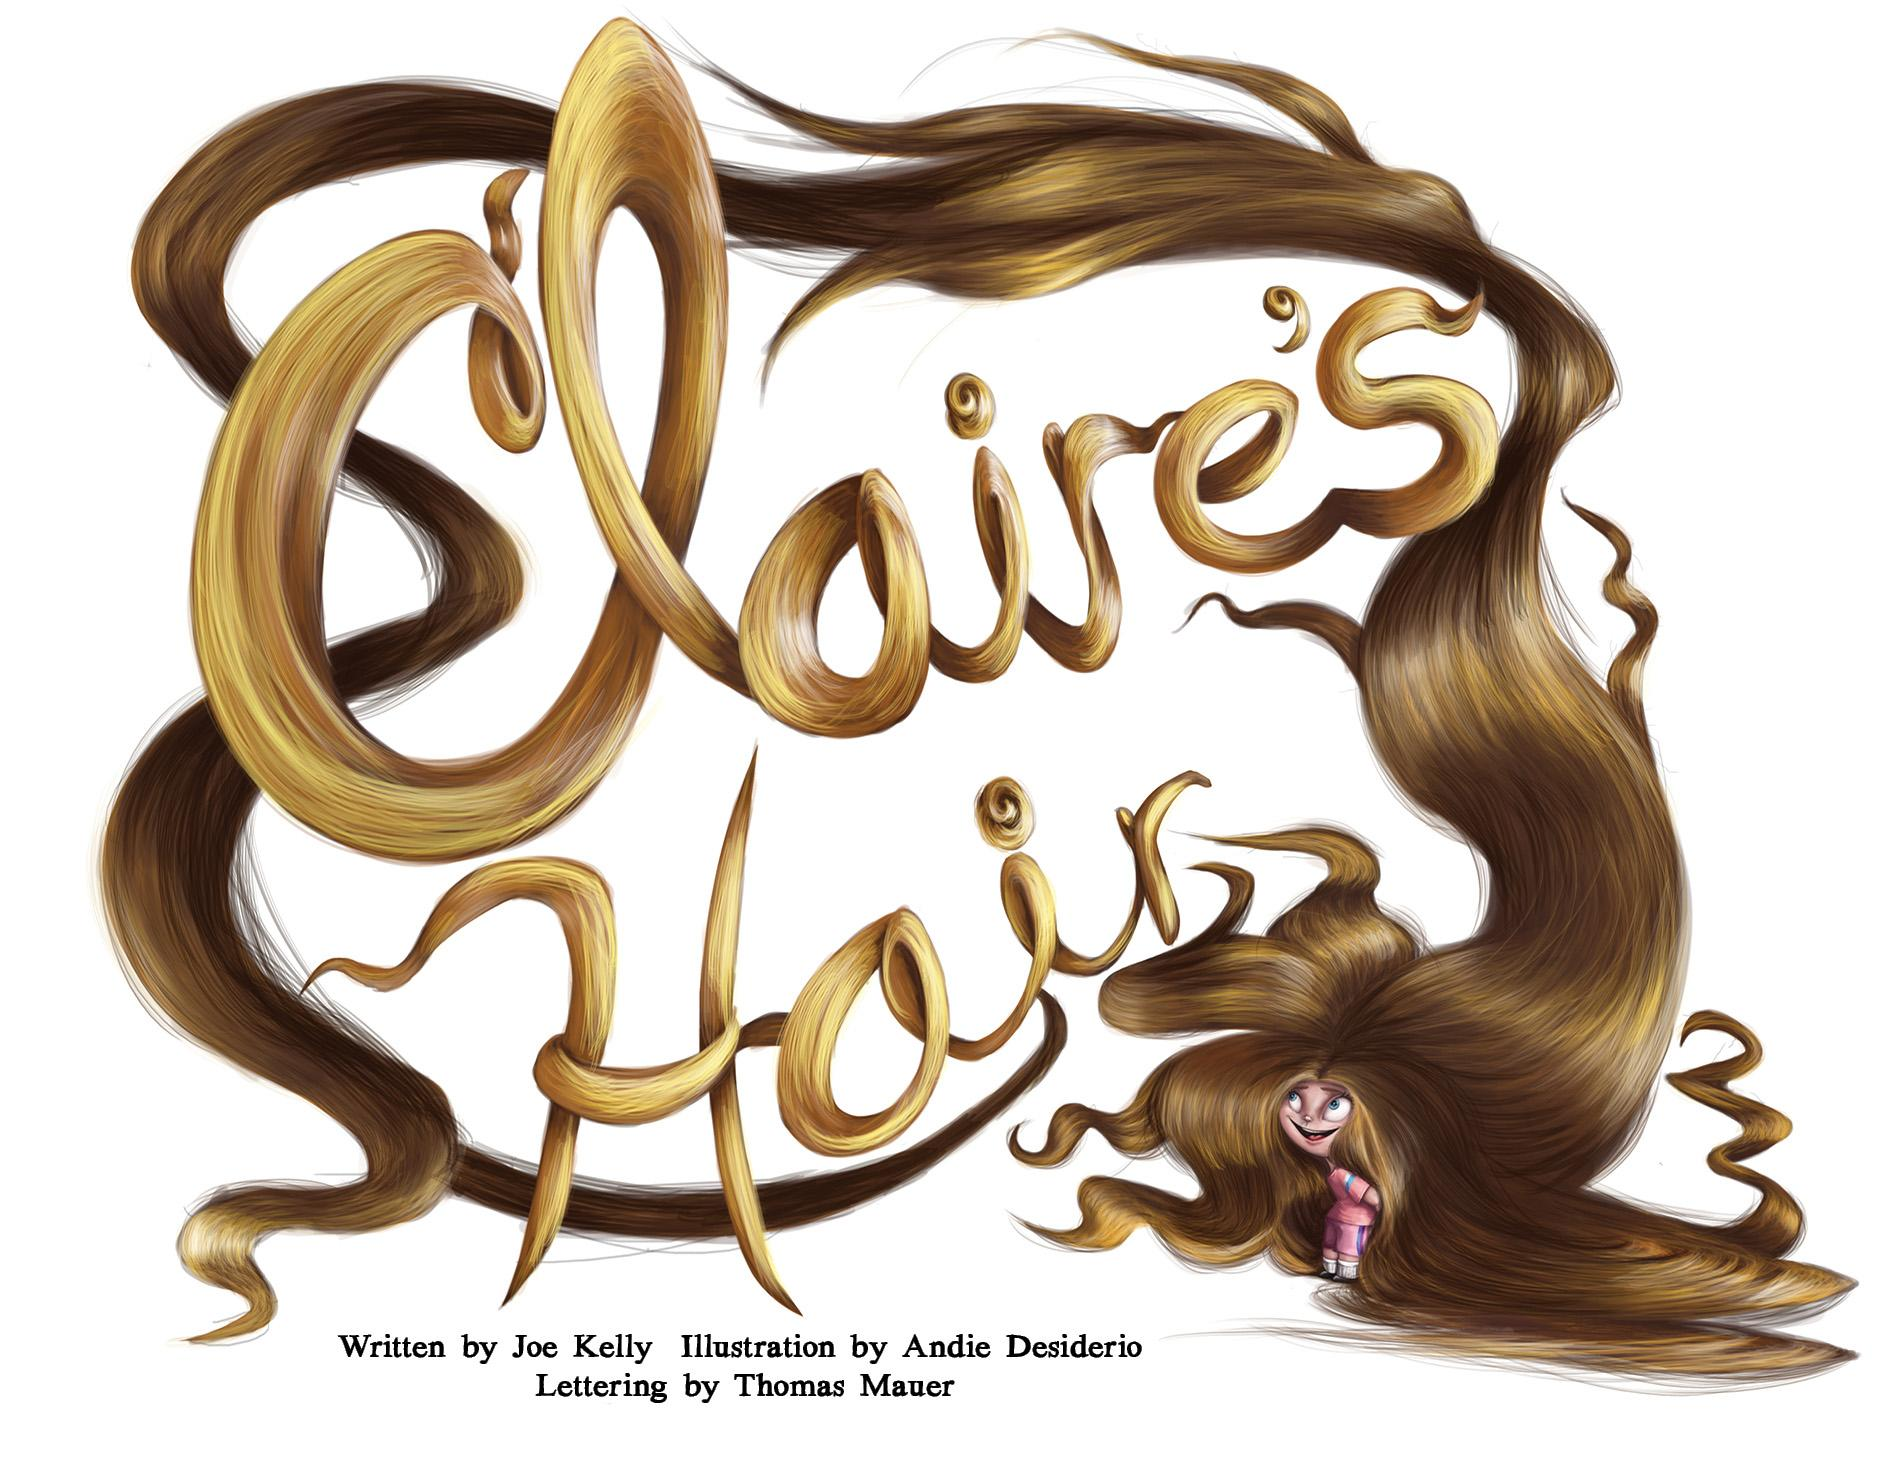 Claires Hair (2021) (digital) (panelsyndicate